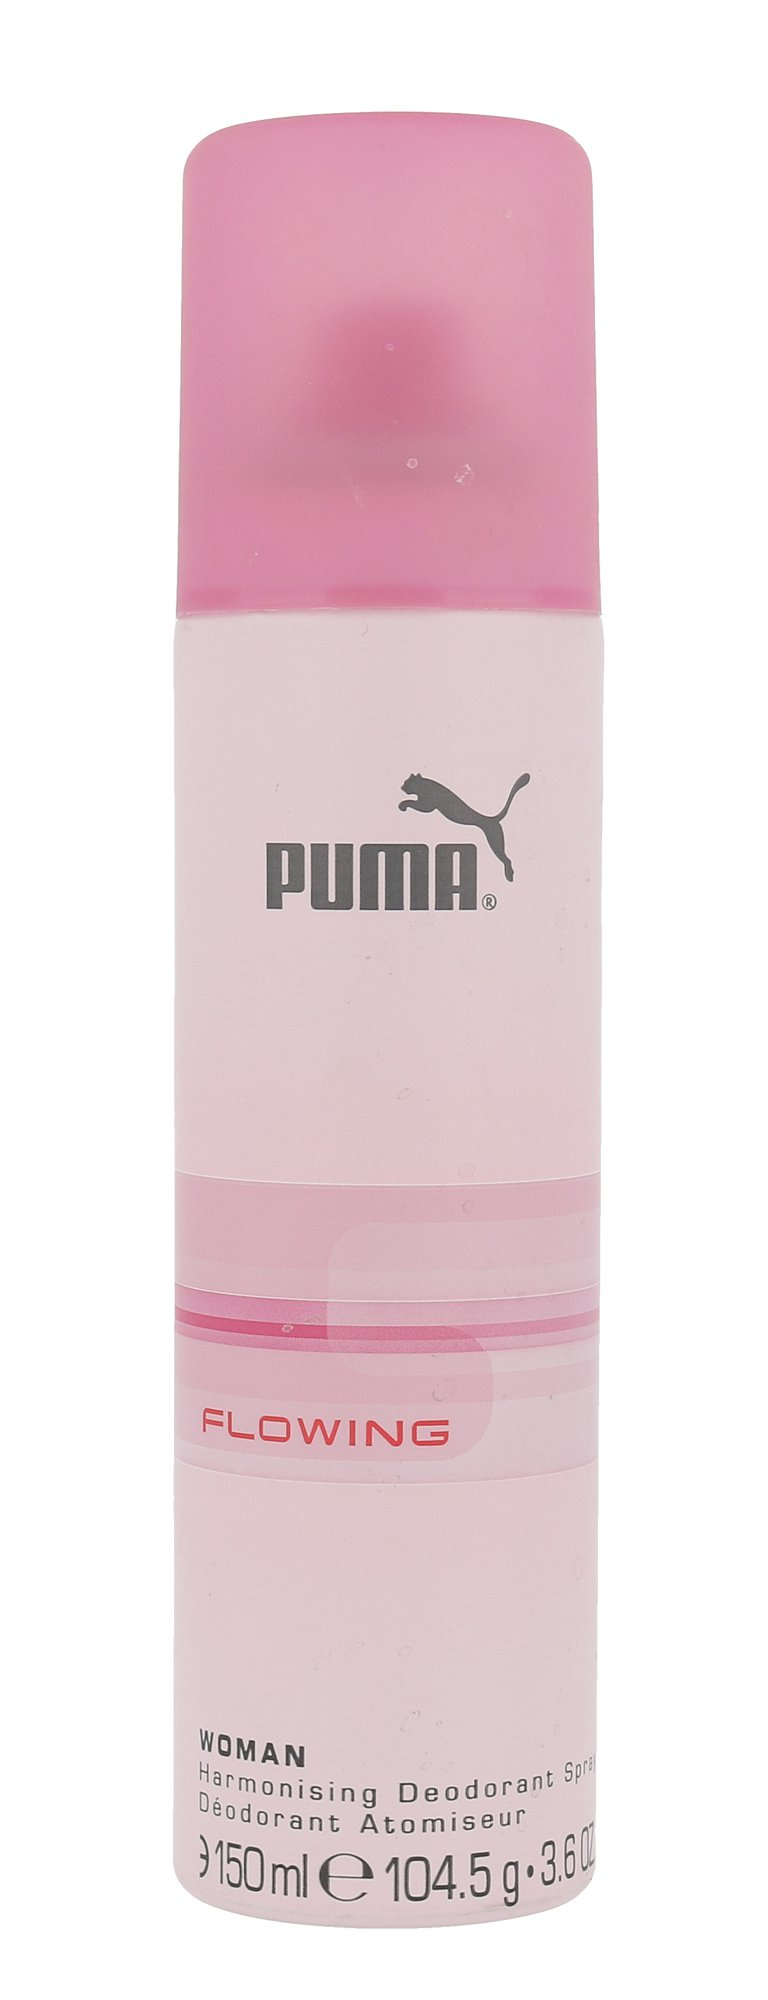 Puma Flowing Woman, Deodorant 150ml